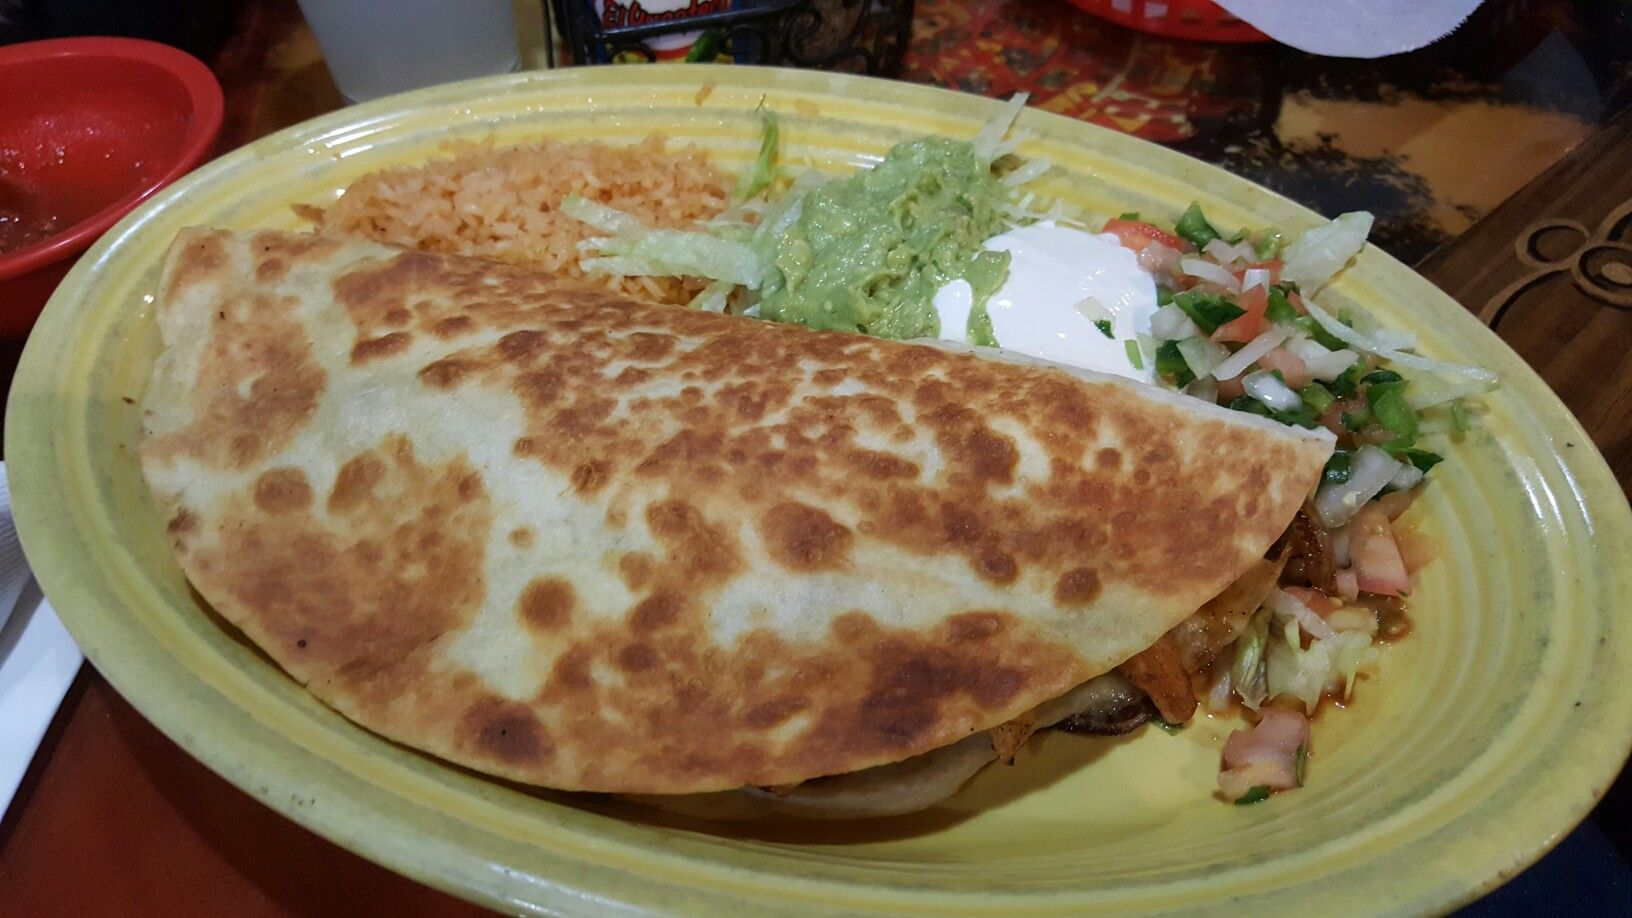 Quesadilla Mazatlan At Riviera Maya Mexican Restaurant In Fishers